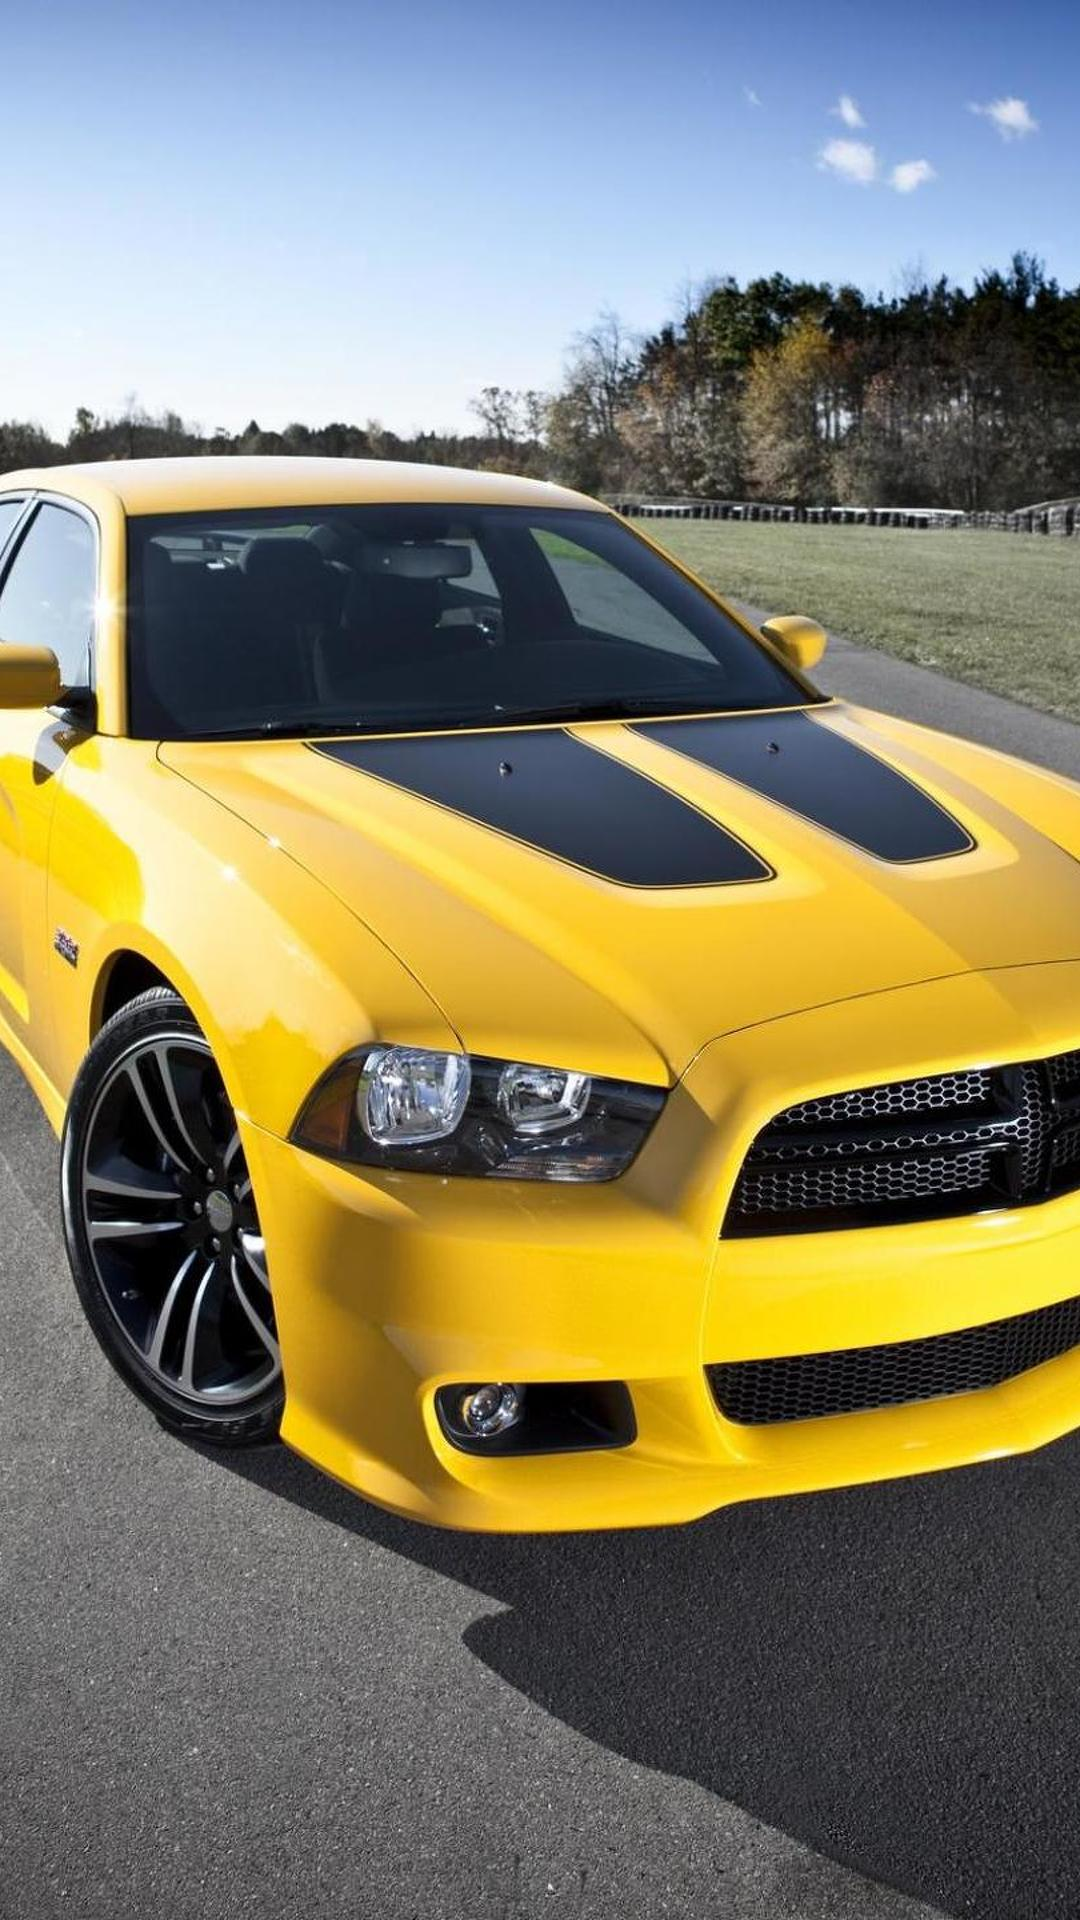 2012 dodge challenger srt8 yellow jacket and charger srt8